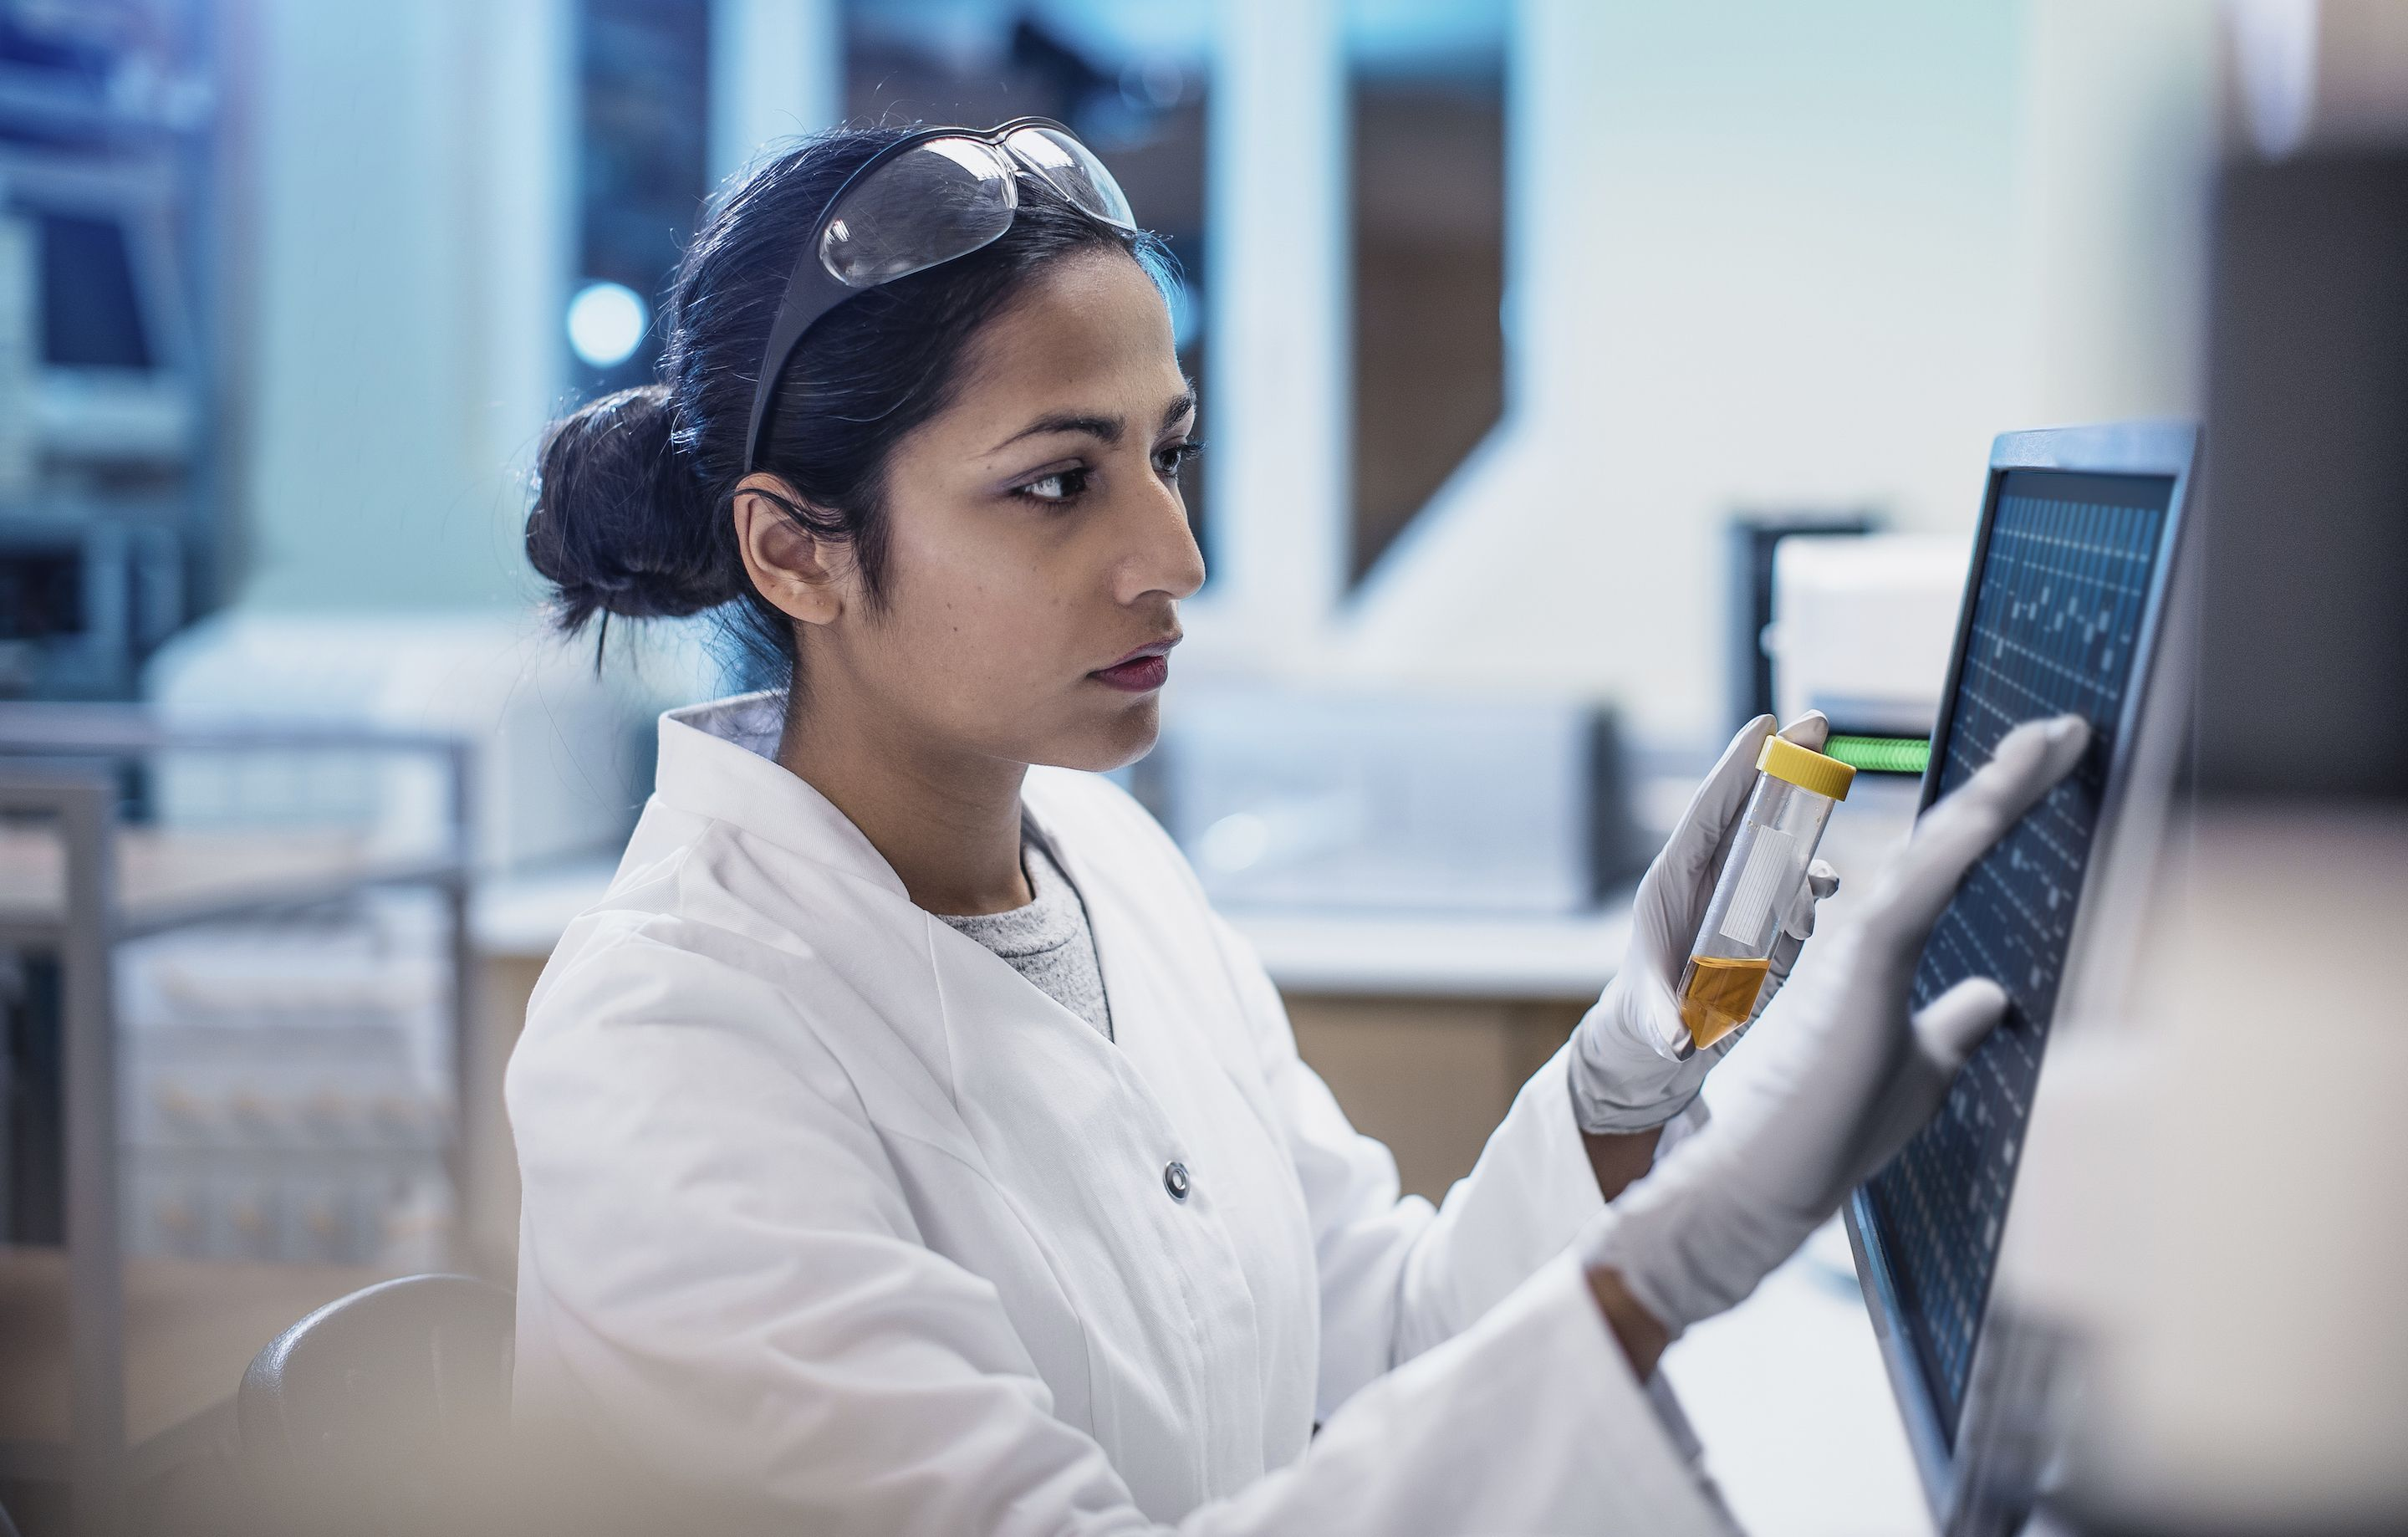 Female scientist using computer software in lab